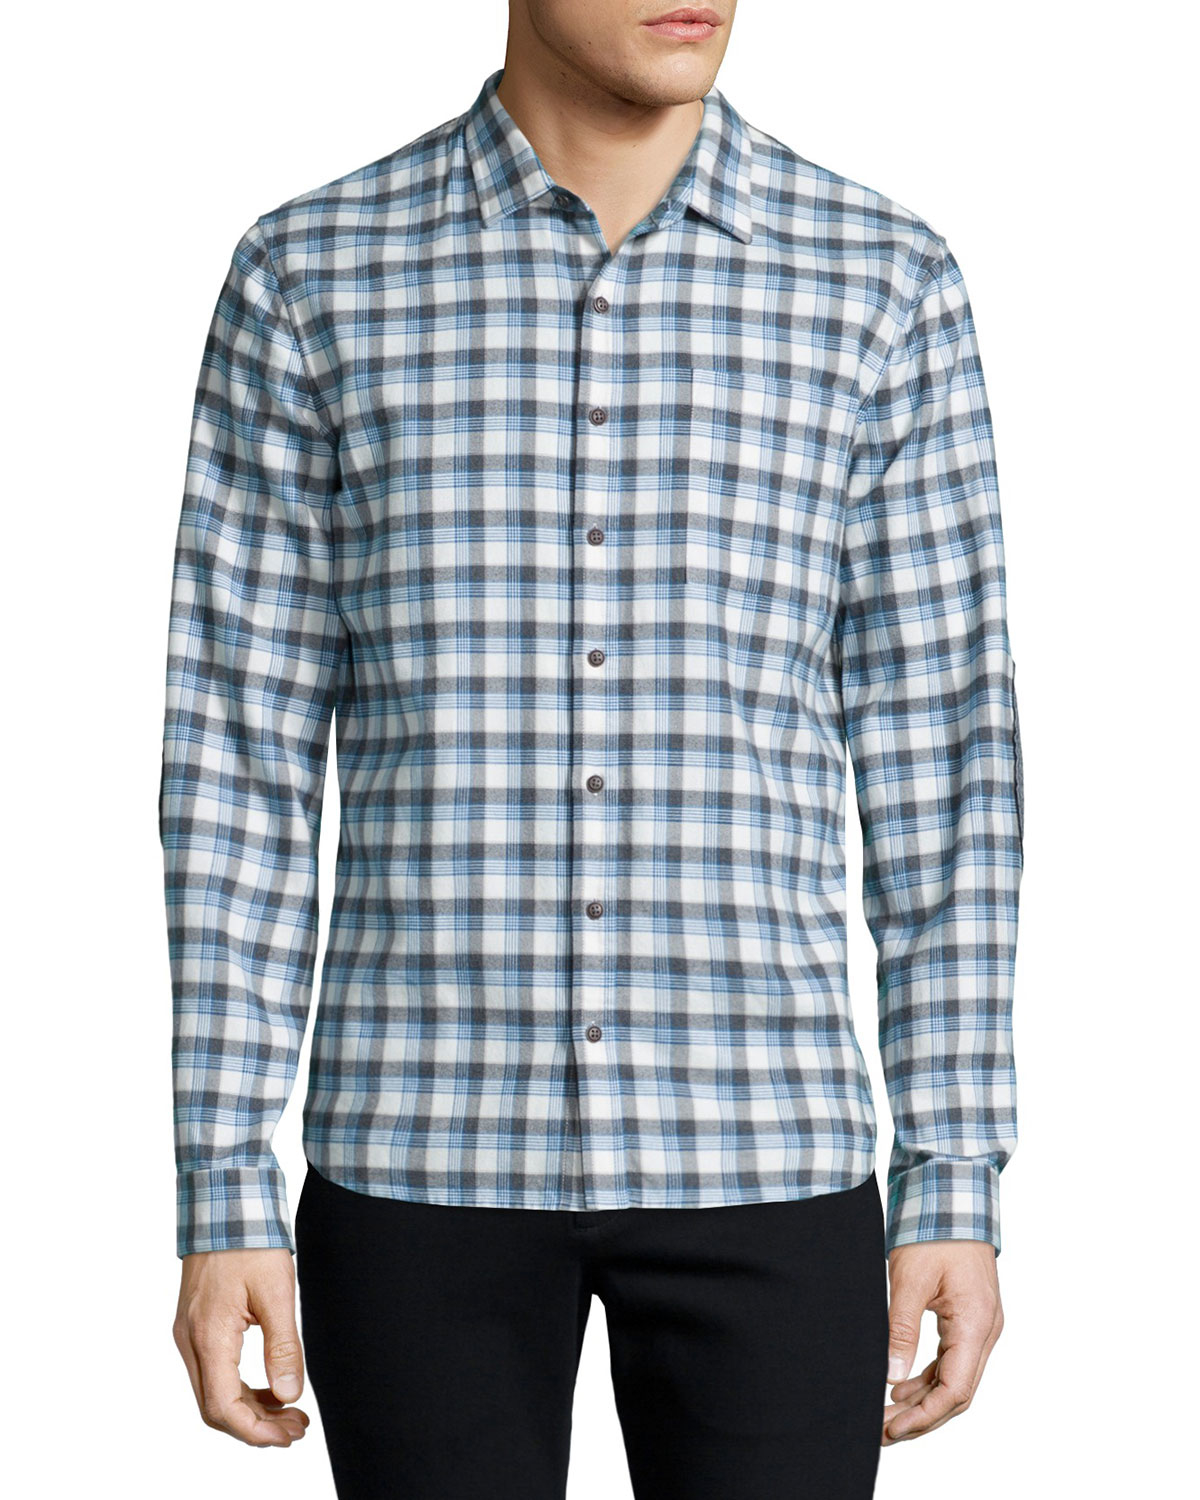 Atm plaid flannel long sleeve sport shirt in gray lyst for Grey plaid shirt womens